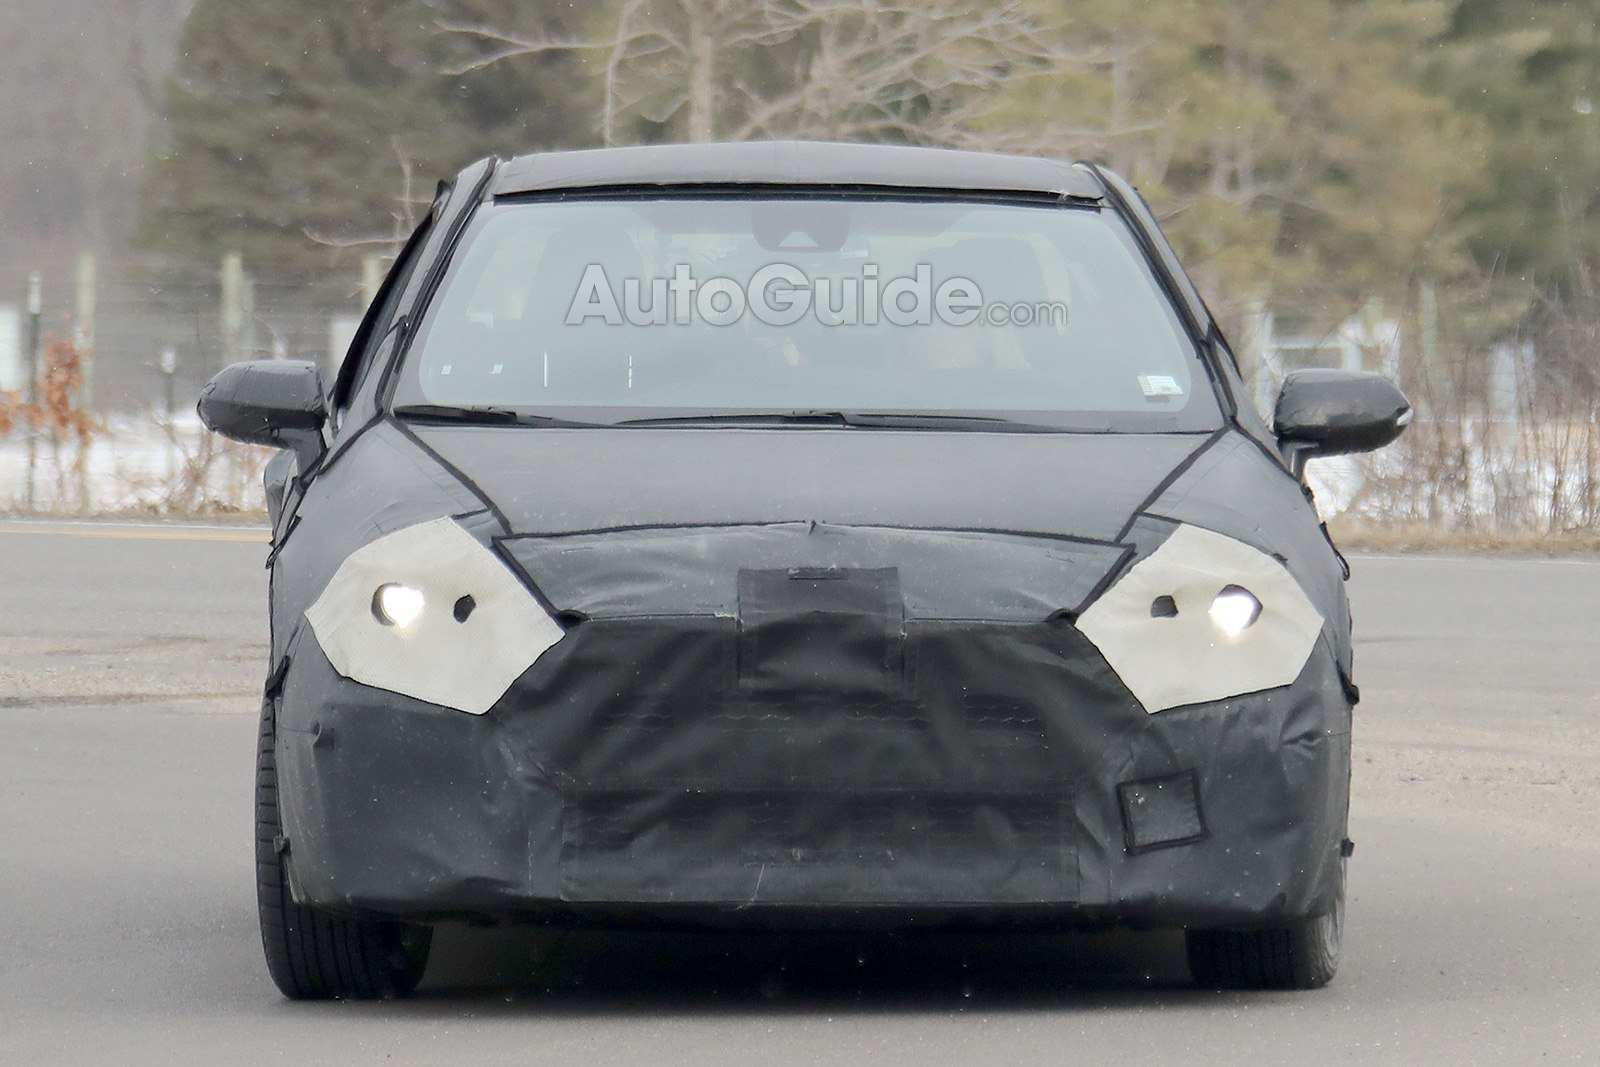 11 New 2020 Spy Shots Toyota Prius Review with 2020 Spy Shots Toyota Prius